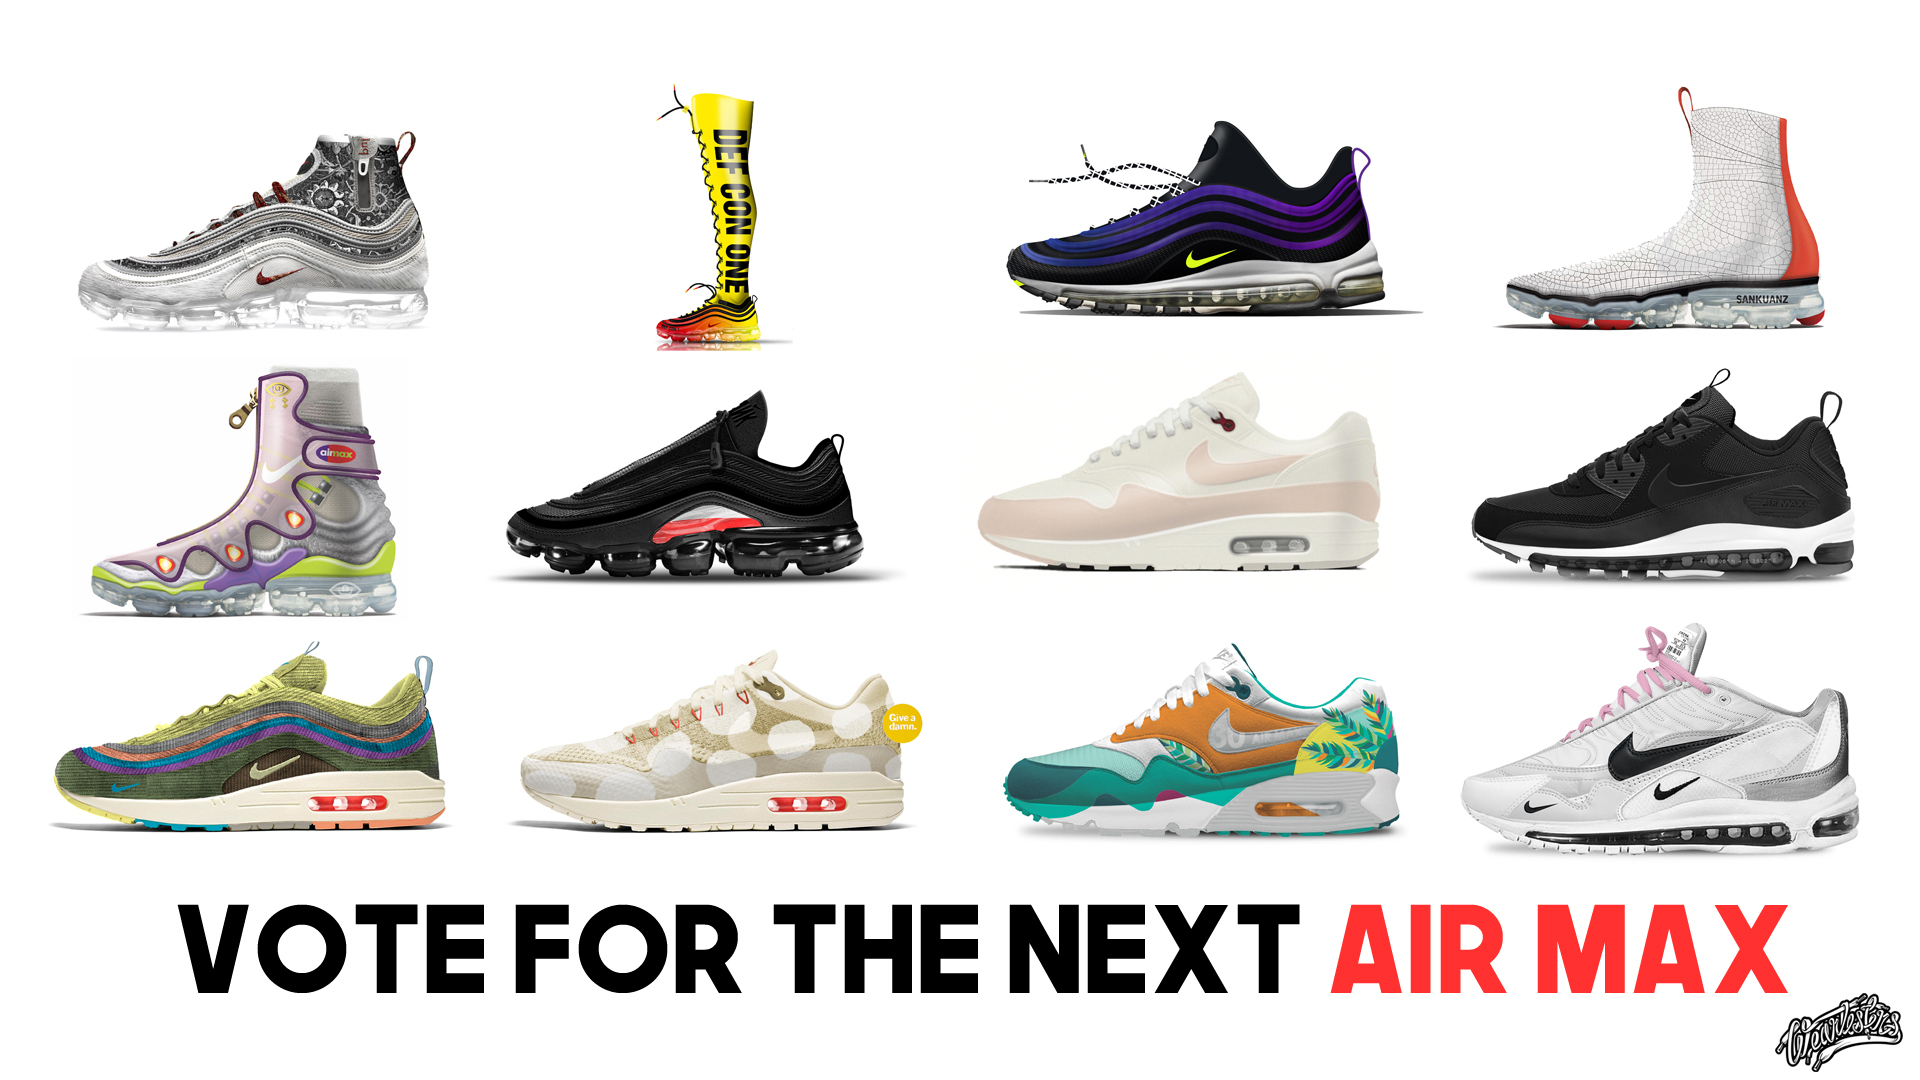 timeless design d22c6 d8aed Here Are Our Favorite Designs from Nikes Revolutionairs - We